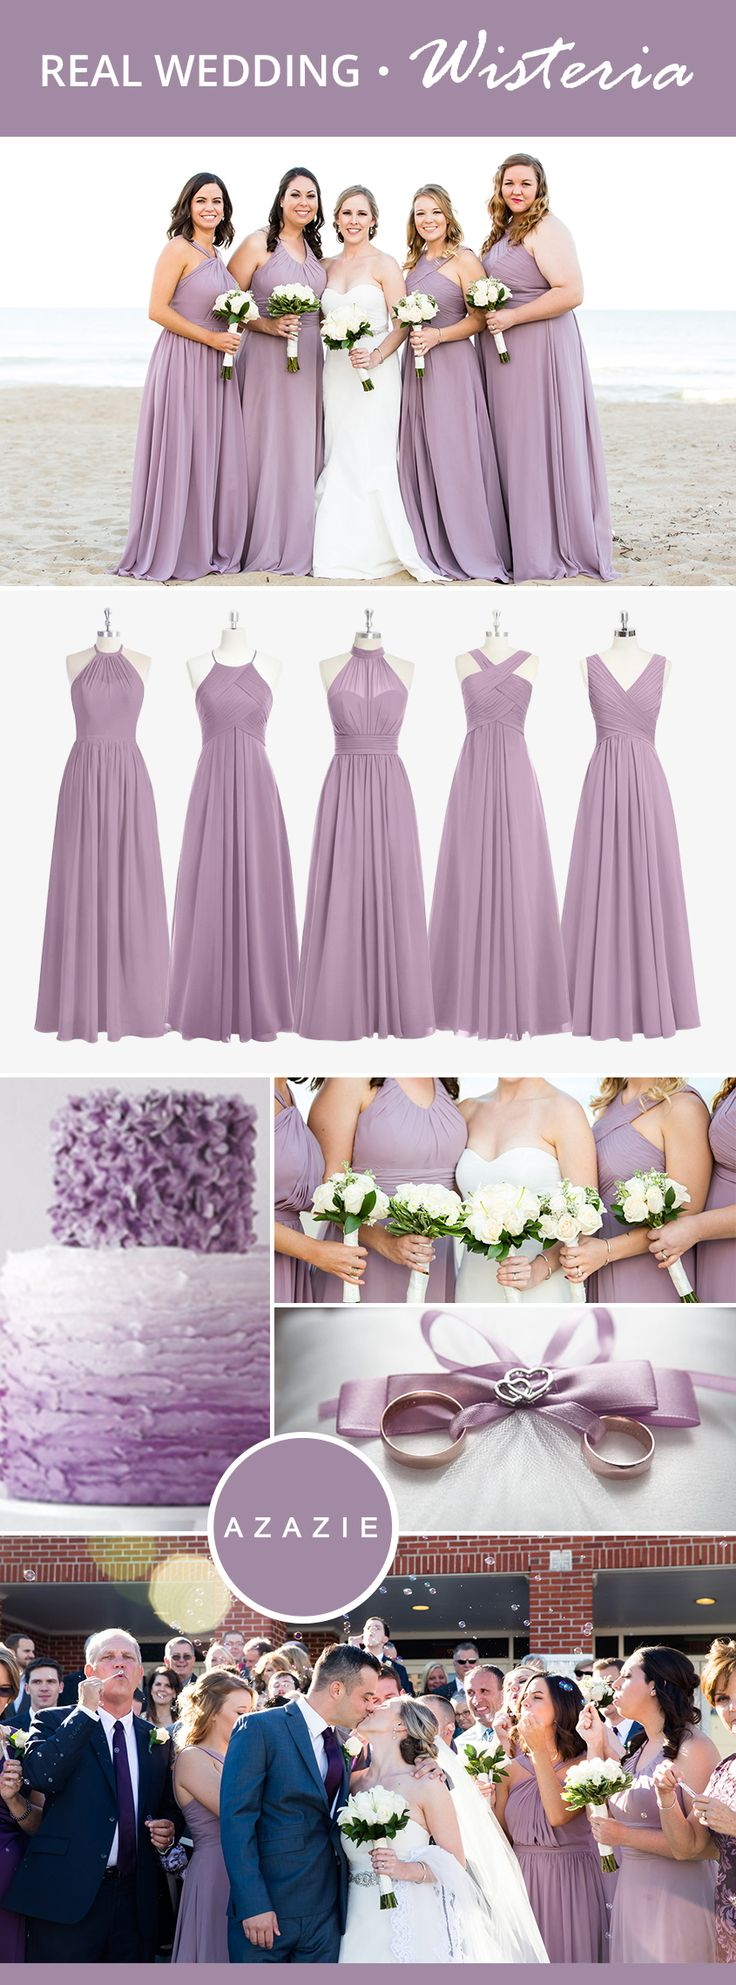 Uncategorized Colors That Match With Lavender best 25 wisteria wedding ideas on pinterest bridesmaid mixing and matching your bridesmaids is easy azazie offers 50 colors to